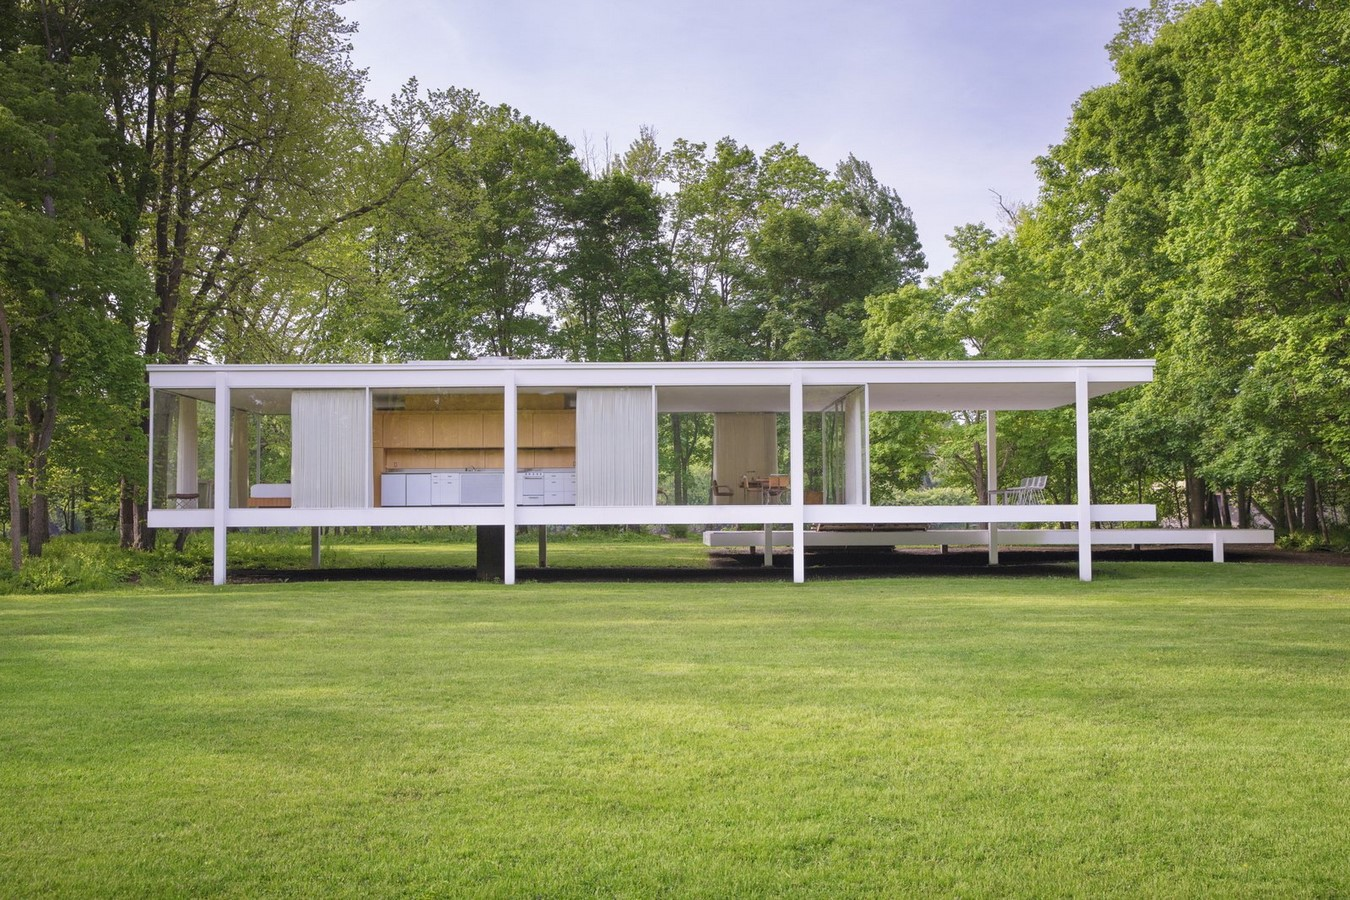 Farnsworth House by Mies van der Rohe: A bond between the House and Nature - Sheet3